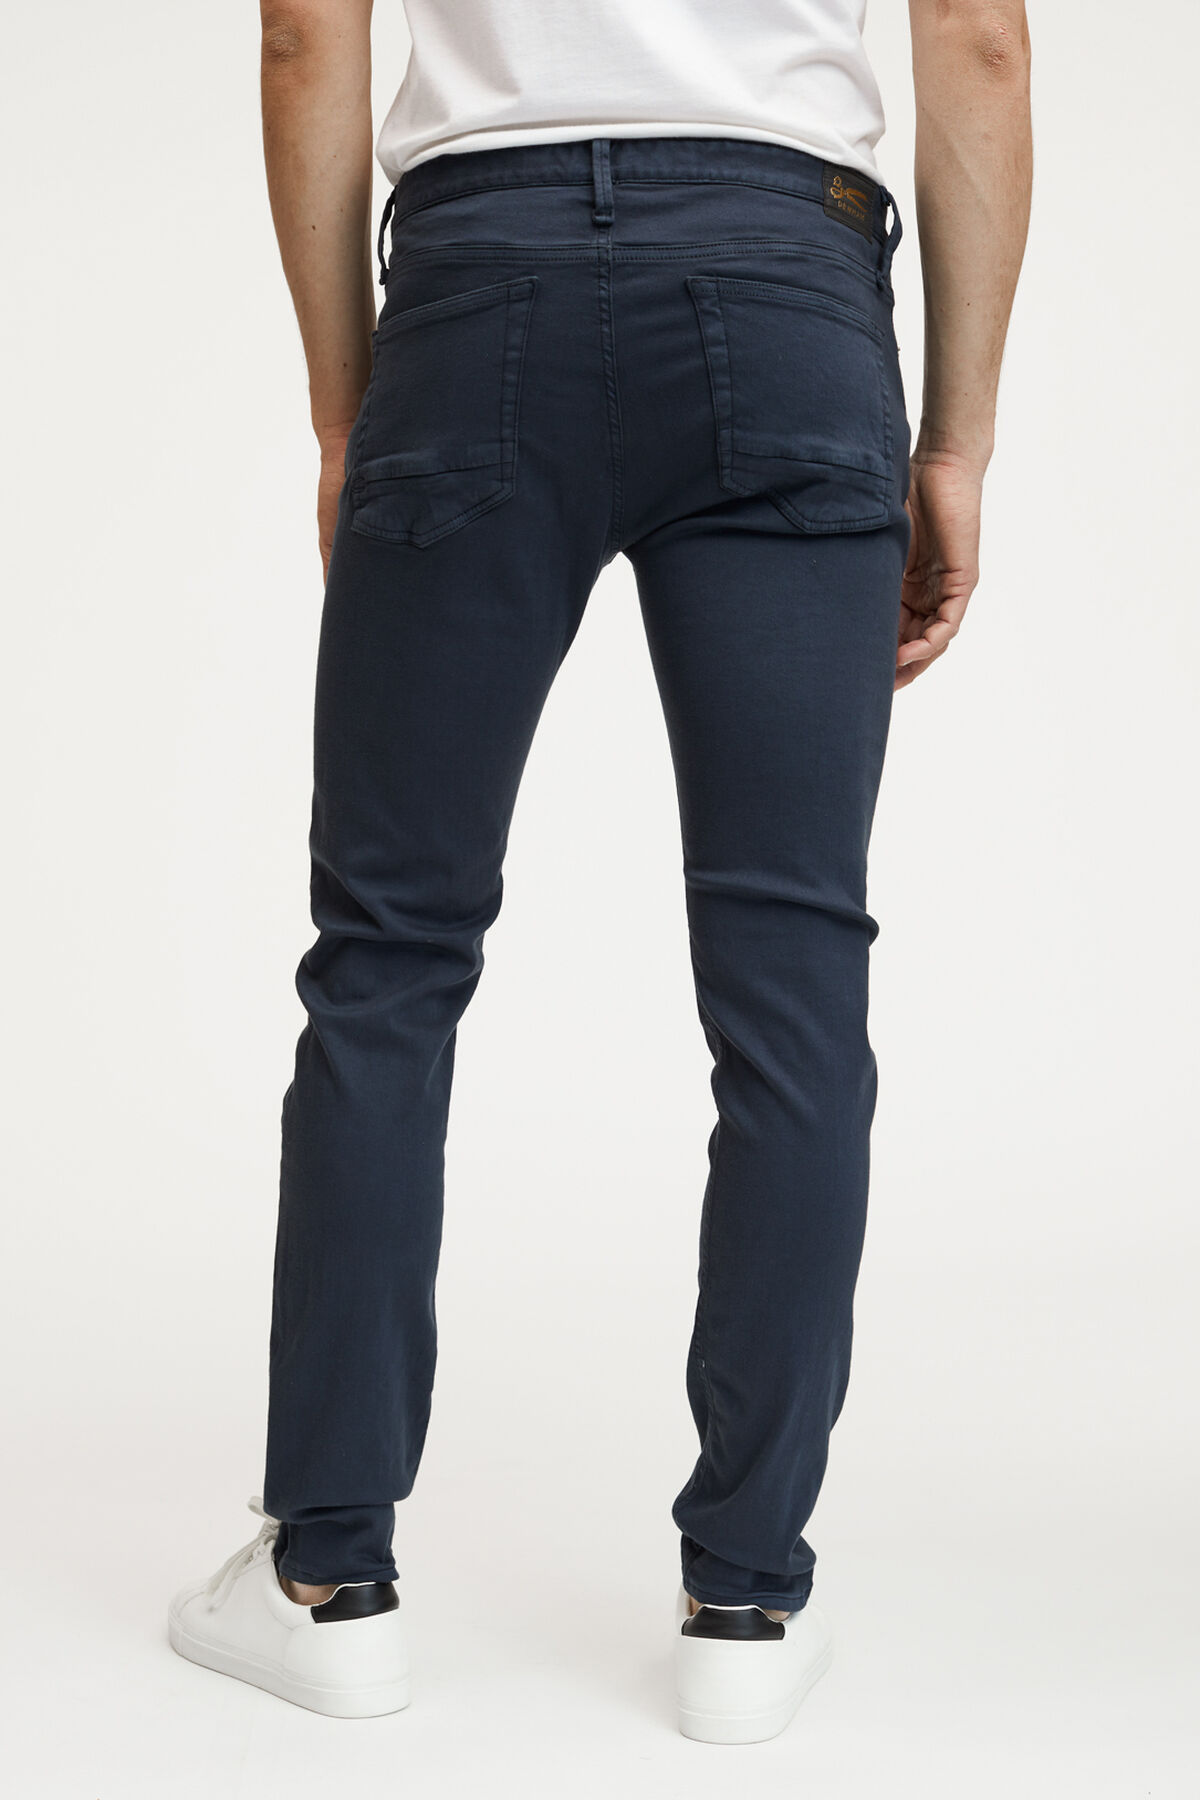 BOLT CHINO Cotton & Tencel Blend - Skinny Fit